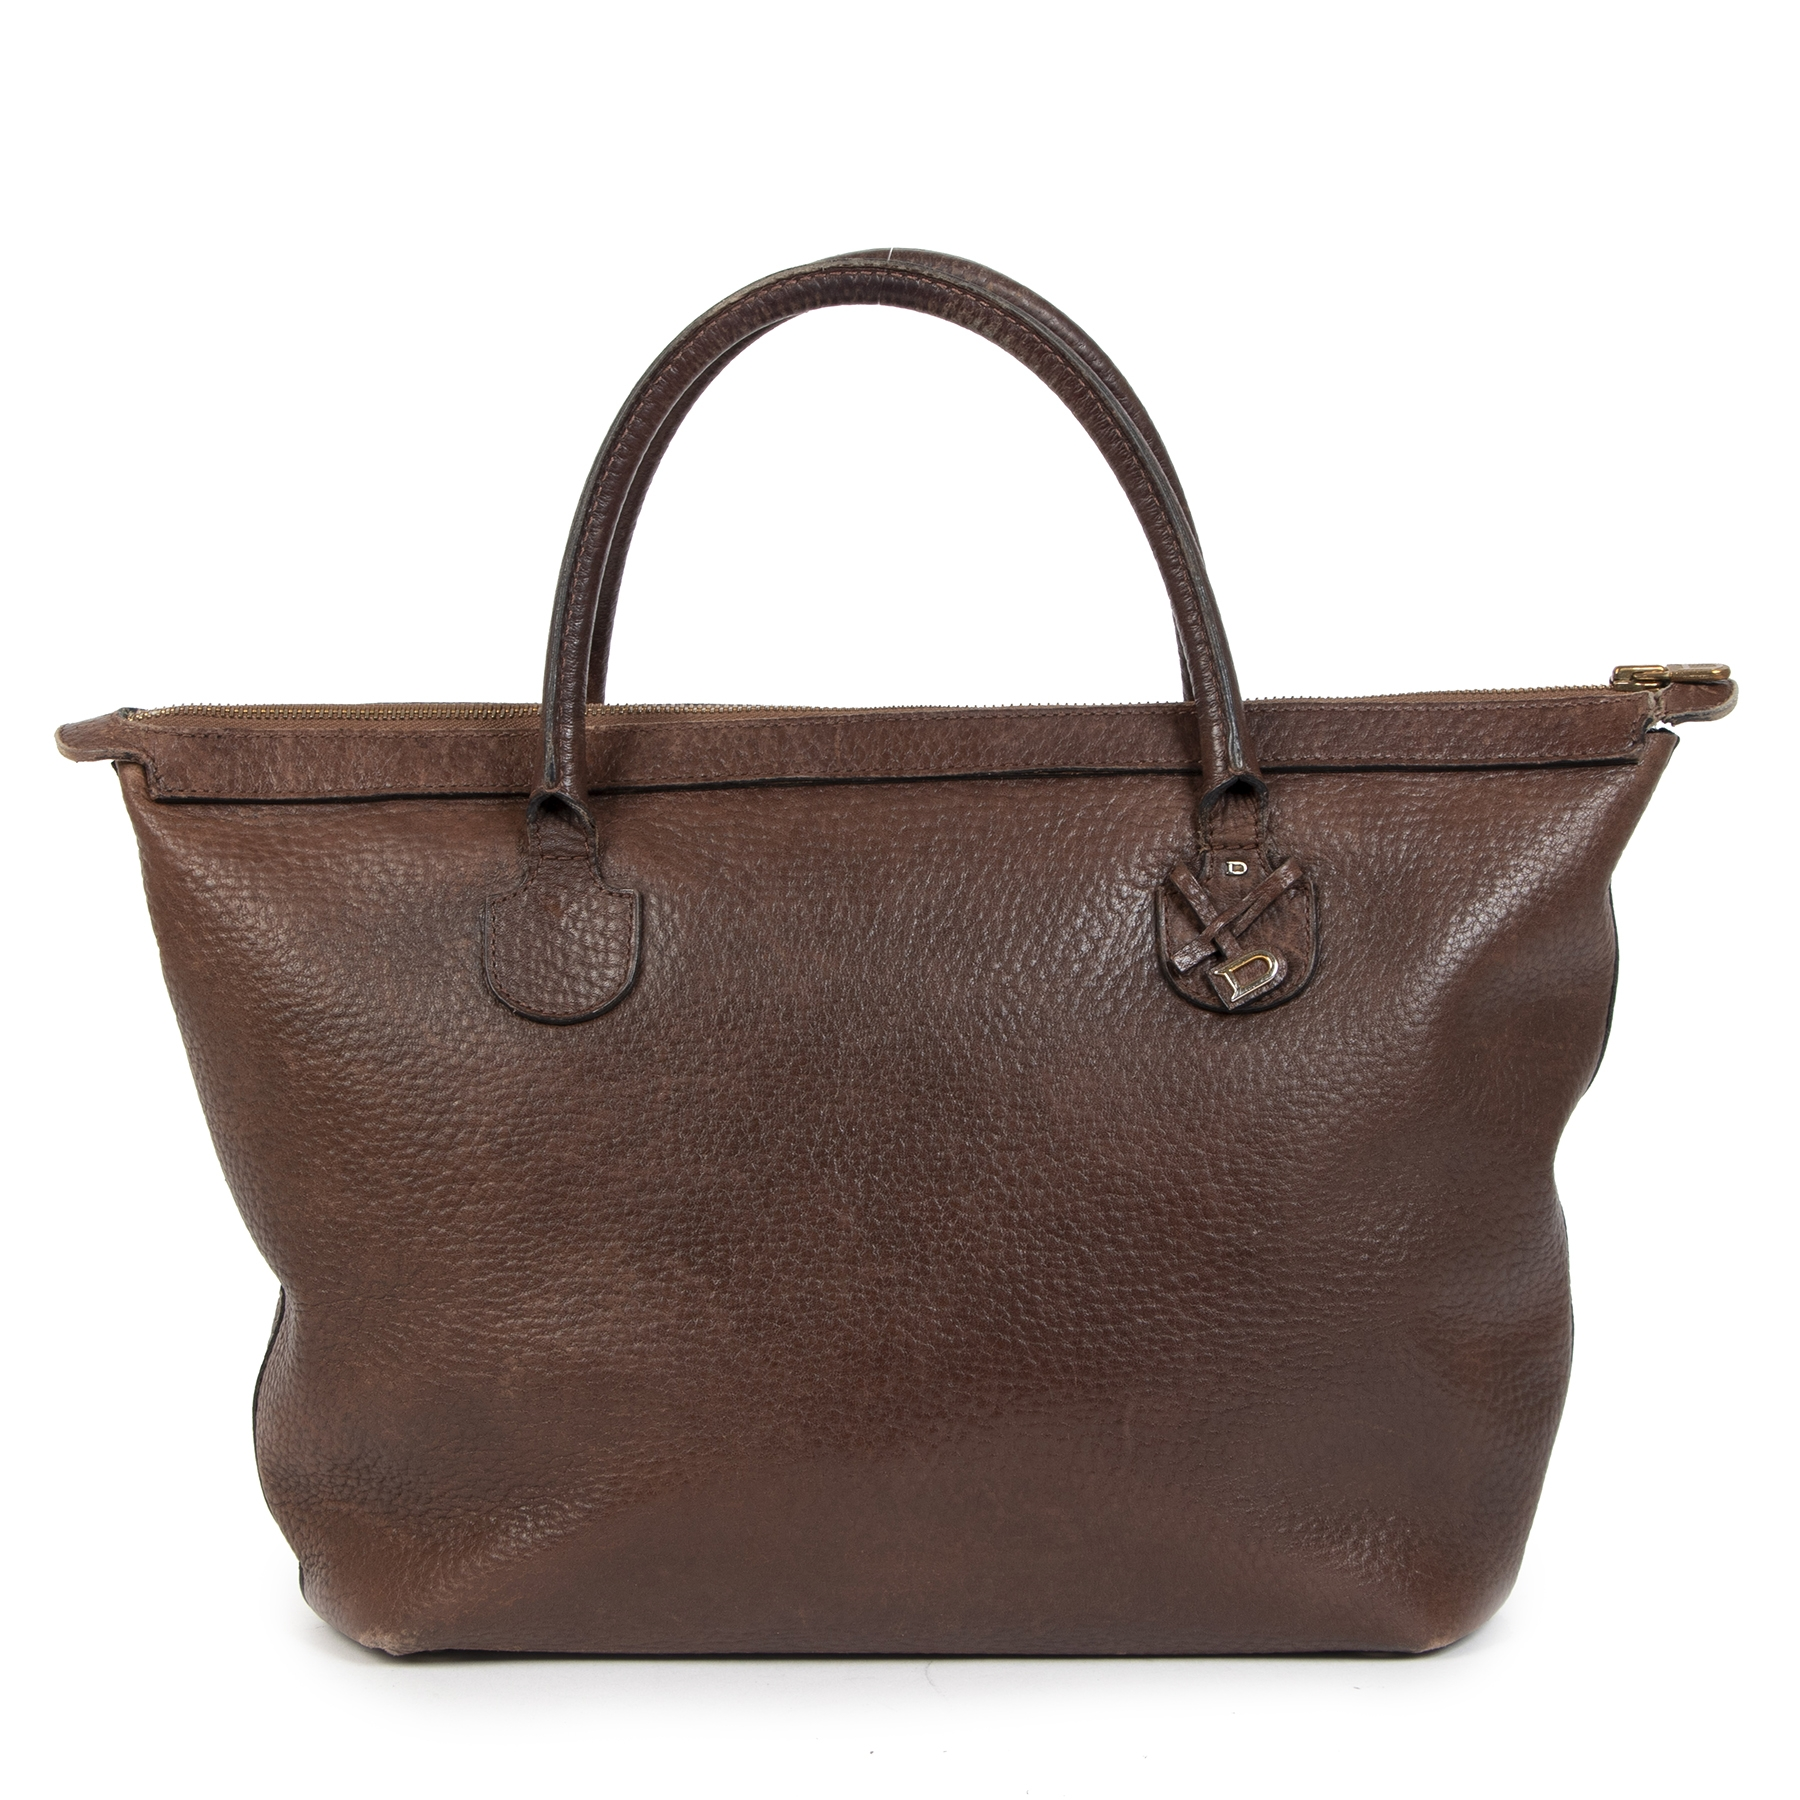 Delvaux Brown Top Handle Bag